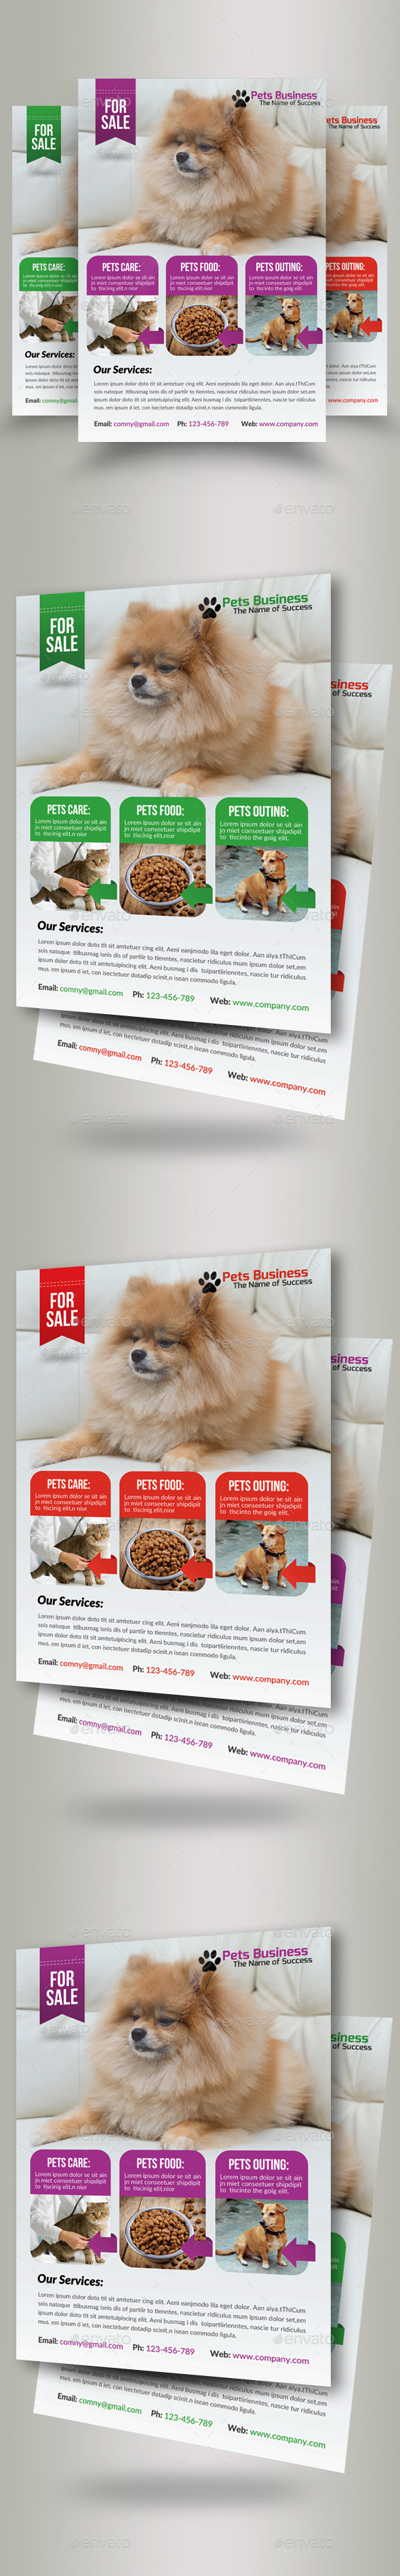 Pet Shop Business Flyers - Corporate Flyers